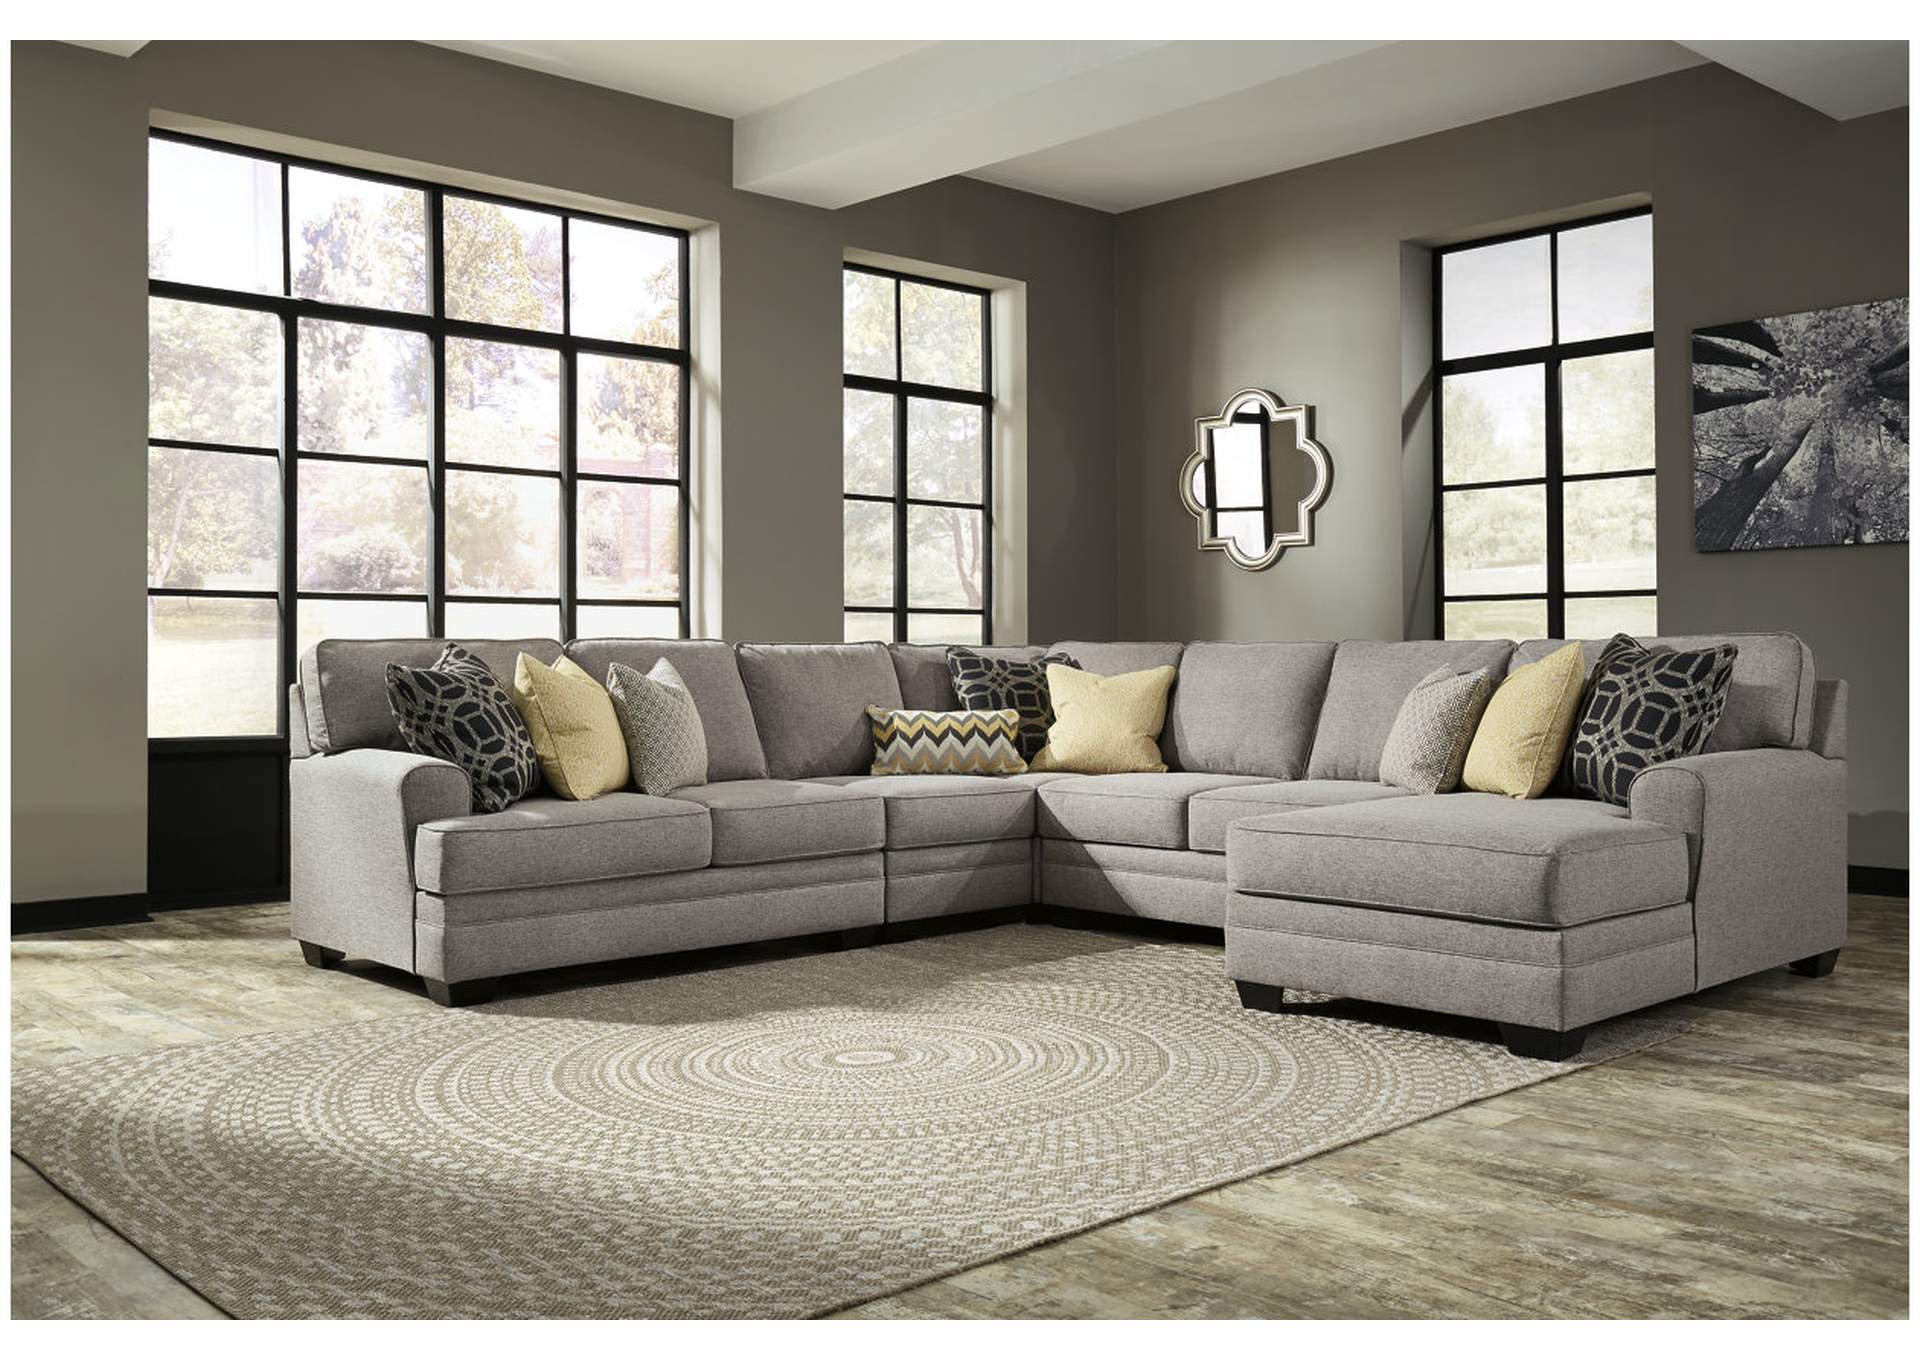 Cresson Pewter 5 Piece RAF Chaise Sectional,Benchcraft